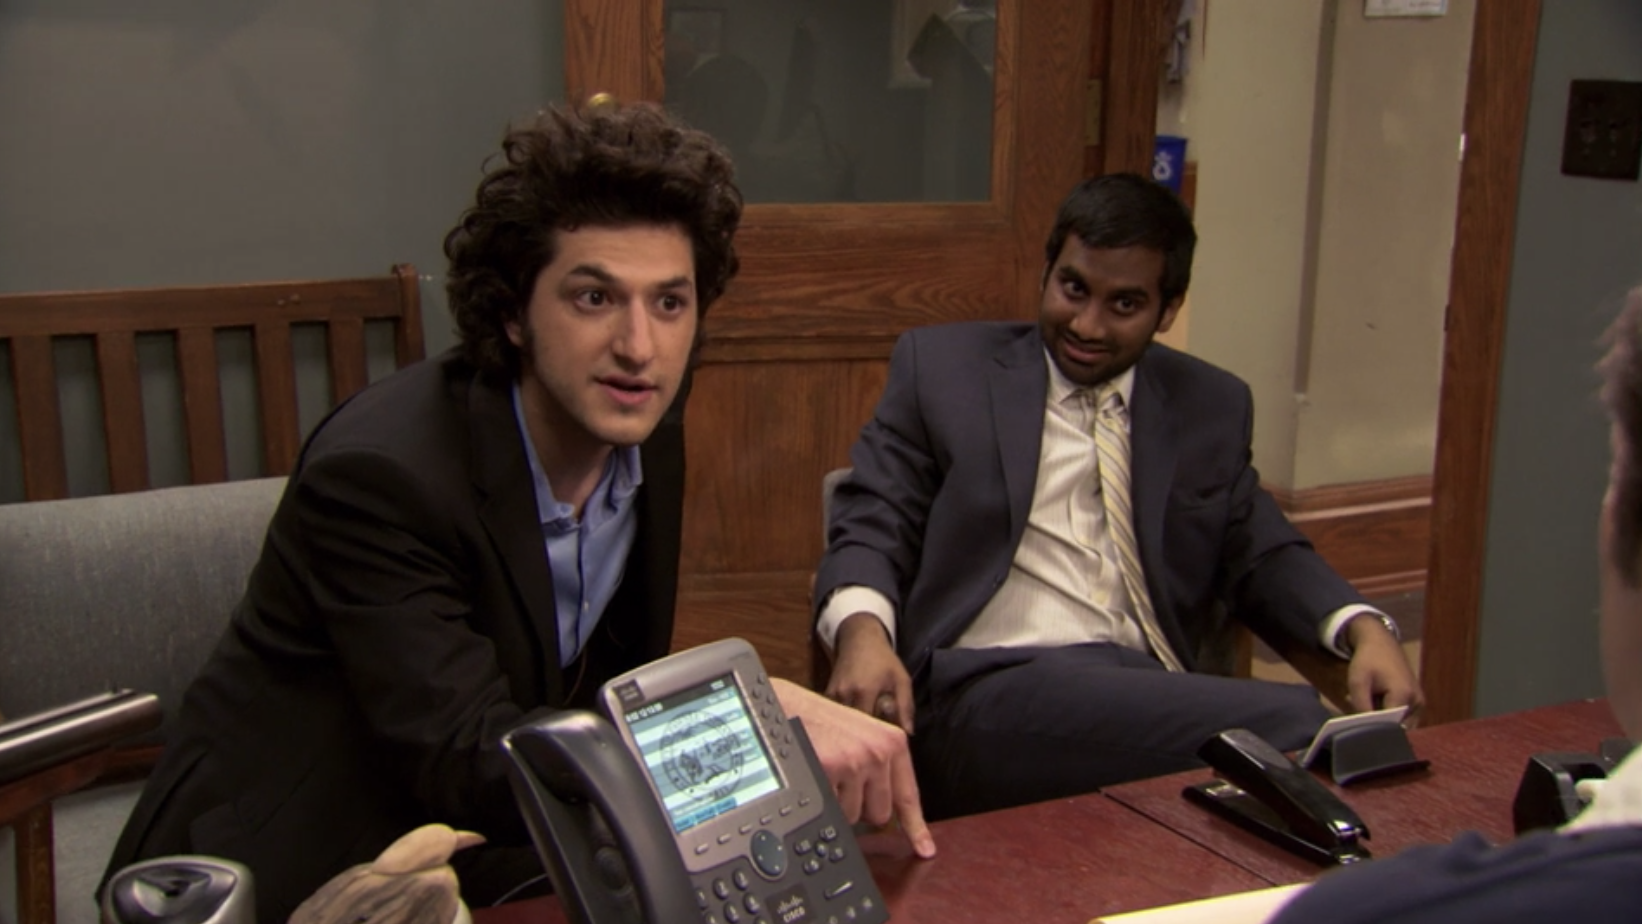 Jean-Ralphio leaning in while interviewing with Ron.